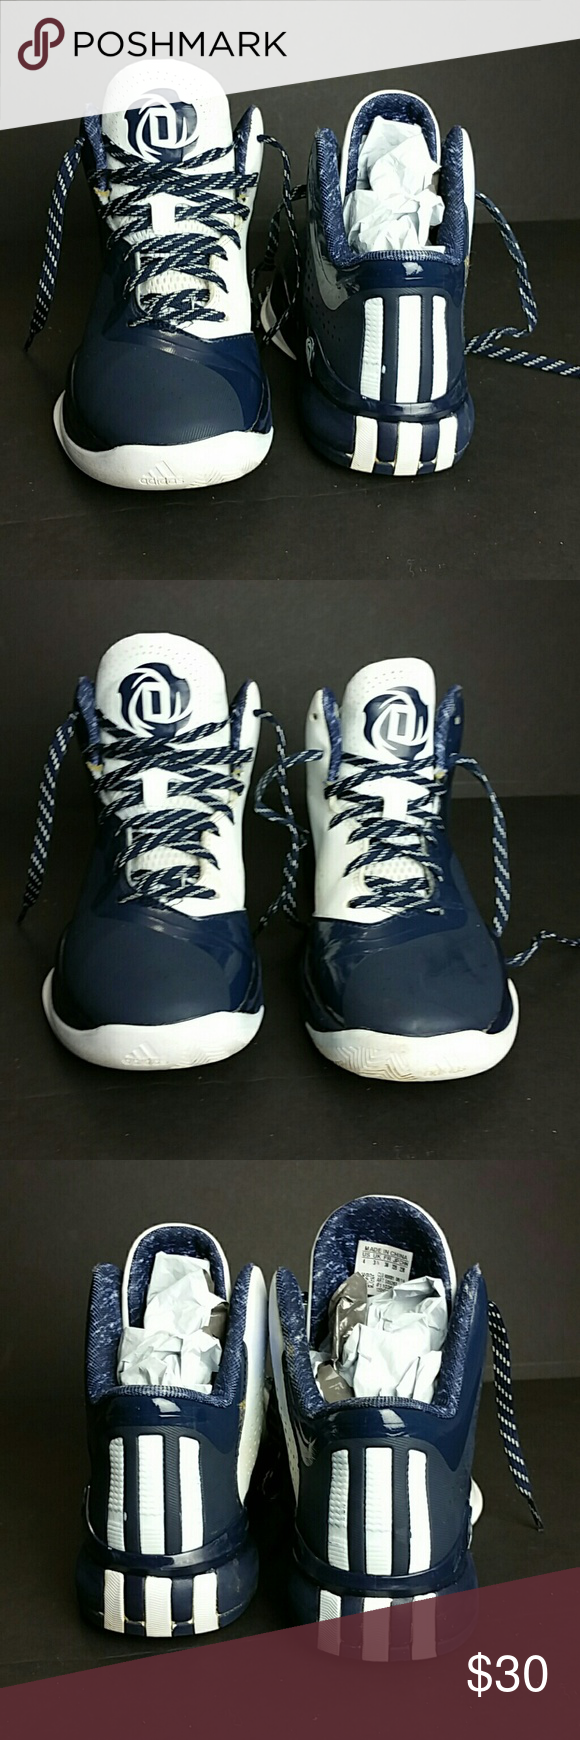 ADIDAS D ROSS BOYS SHOES VERY CLEAN